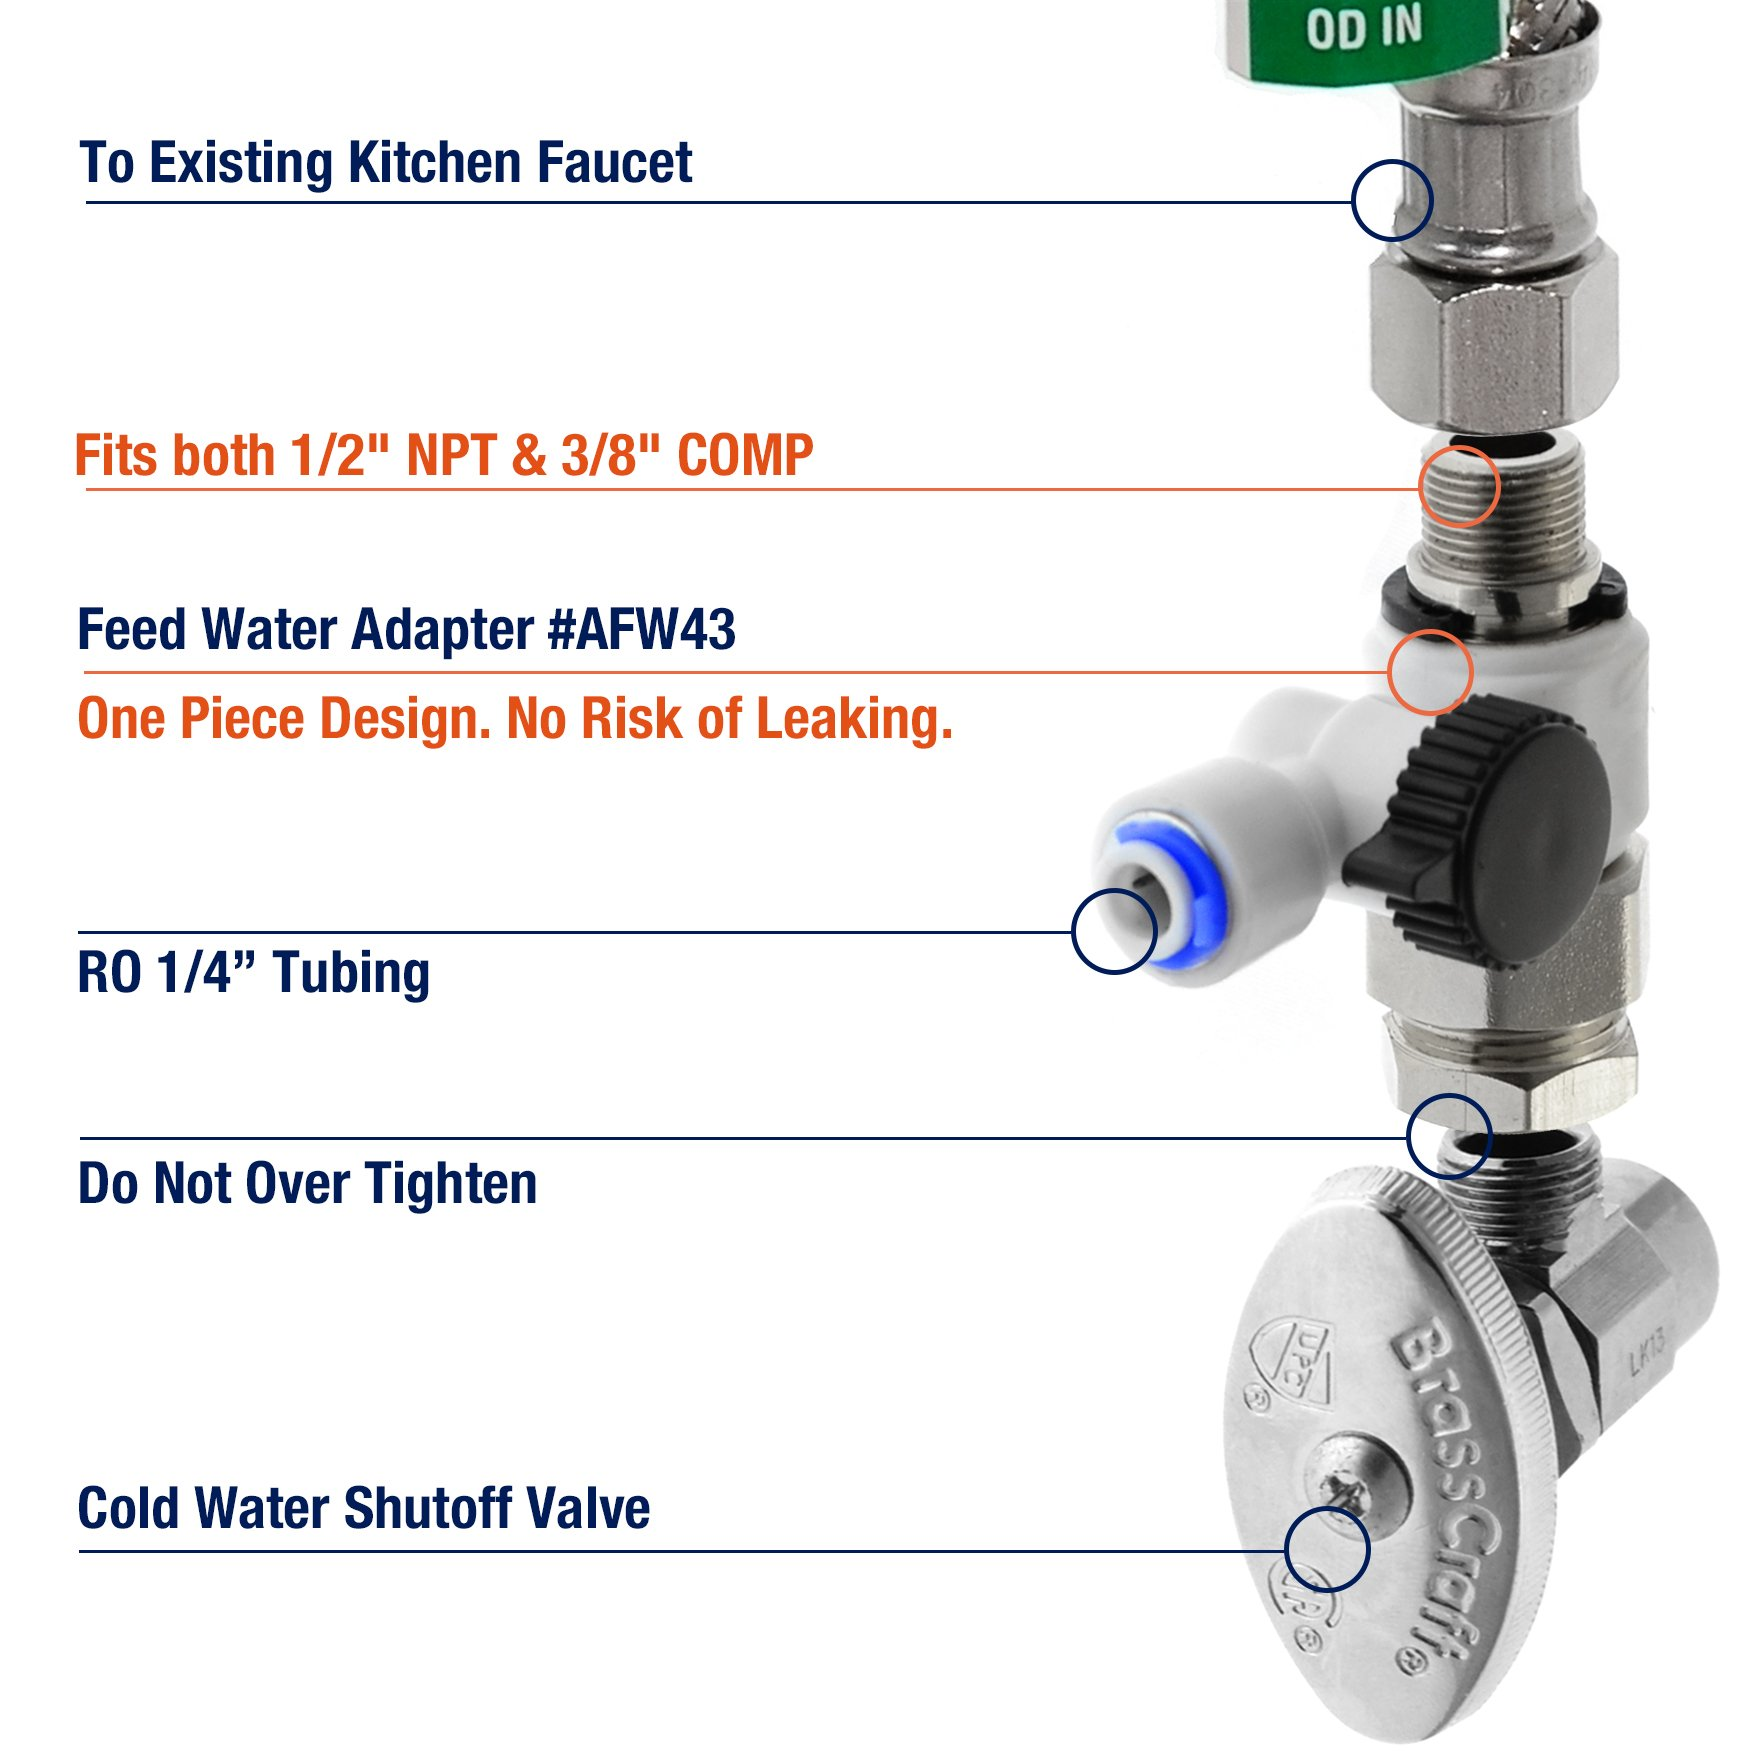 iSpring RCC7AK 6-Stage Under-Sink Reverse Osmosis Drinking Water Filtration System with Alkaline Remineralization Filter - 75 GPD by iSpring (Image #11)